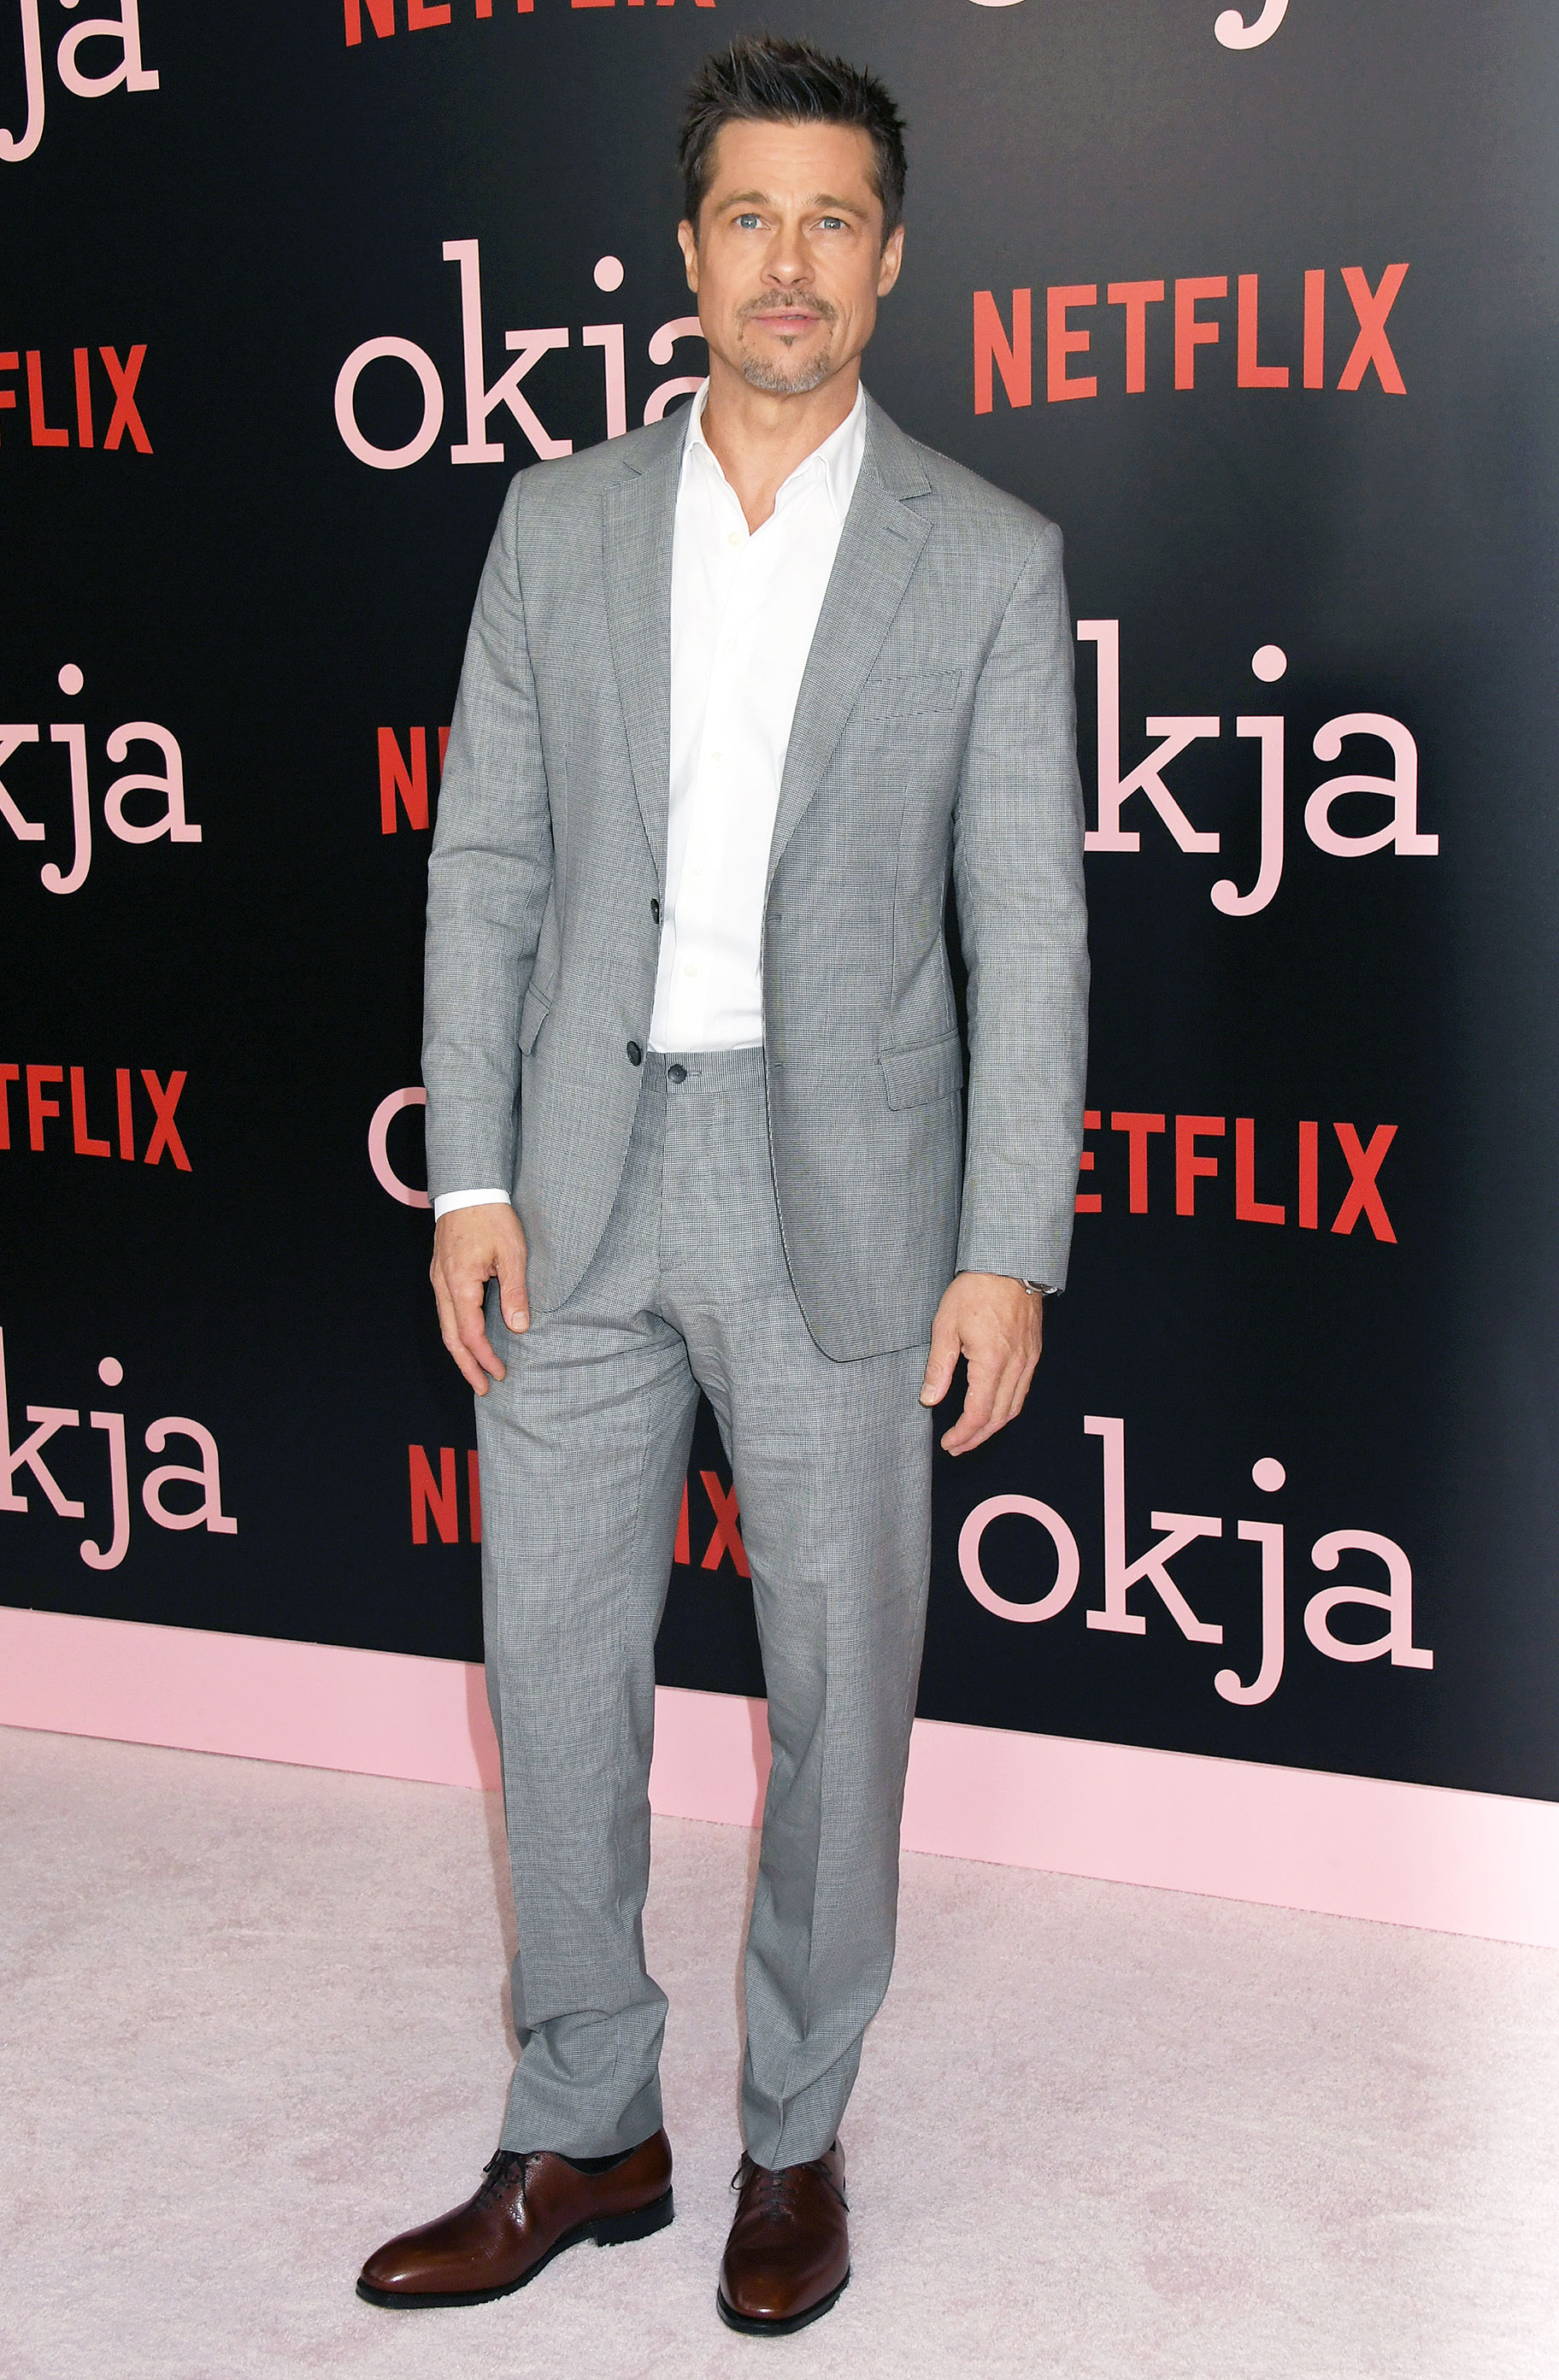 Brad pitt - In a gray suit with a crisp white button-down and brown shoes at the Okja premiere in NYC on June 8, 2017.